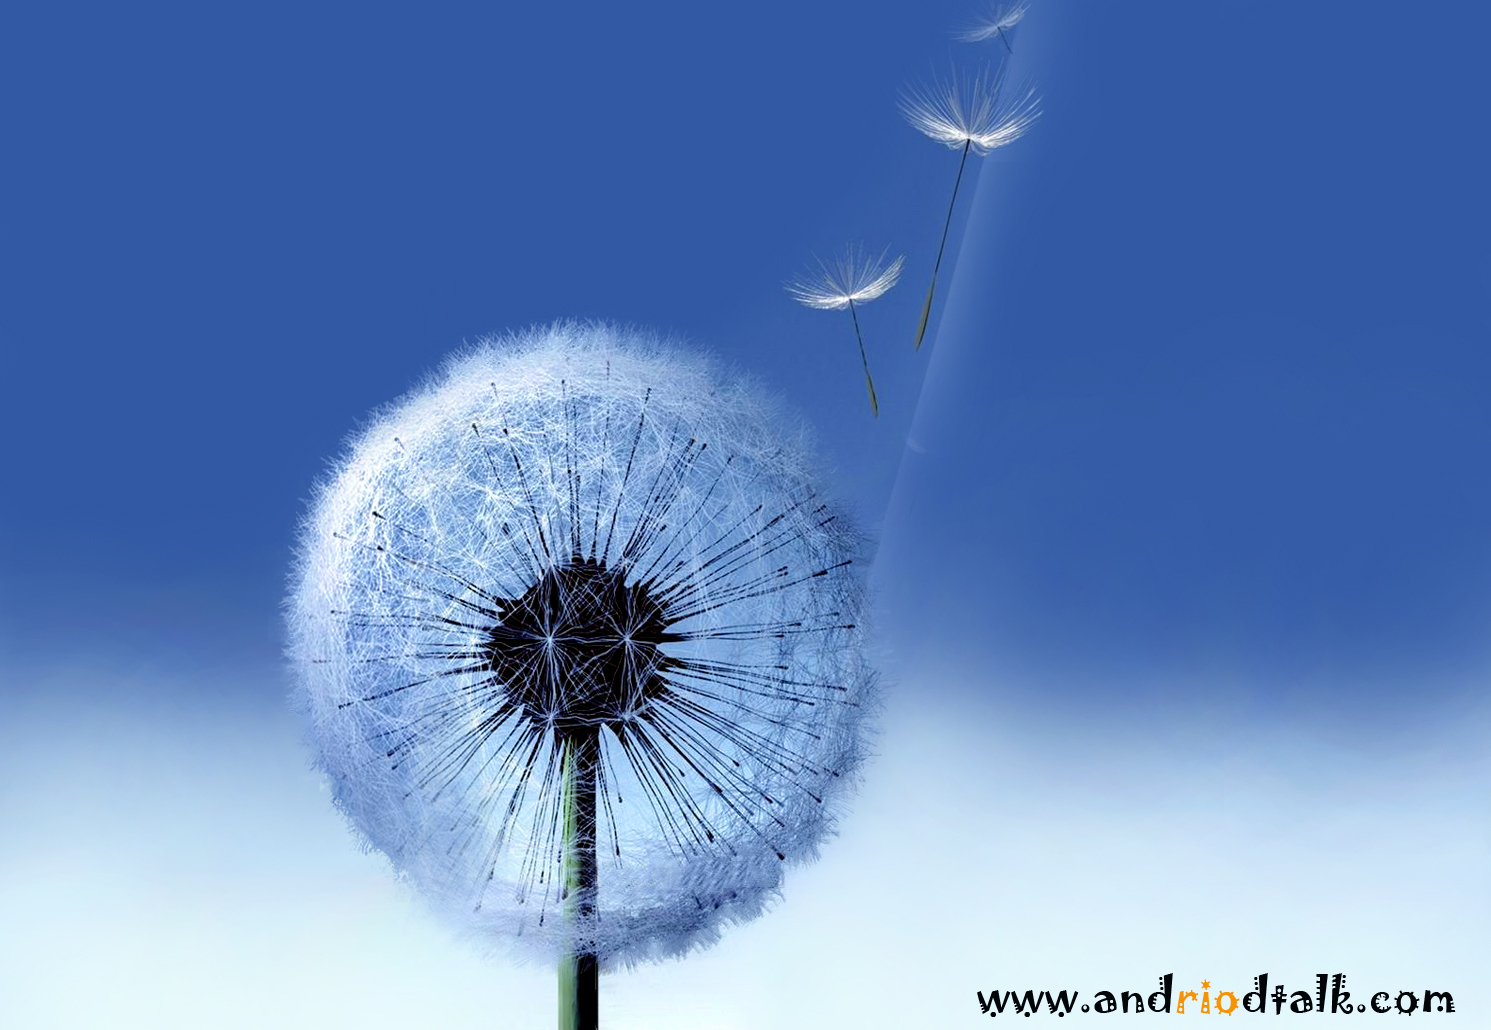 http://3.bp.blogspot.com/--pUhFvU4eiw/UBtjZGRF2mI/AAAAAAAAJjg/Z9Dg6HEaolM/s1600/HD-+galaxy-s3-Dandelion+wallpaper+for+PC+desktop+wallpaper.jpg